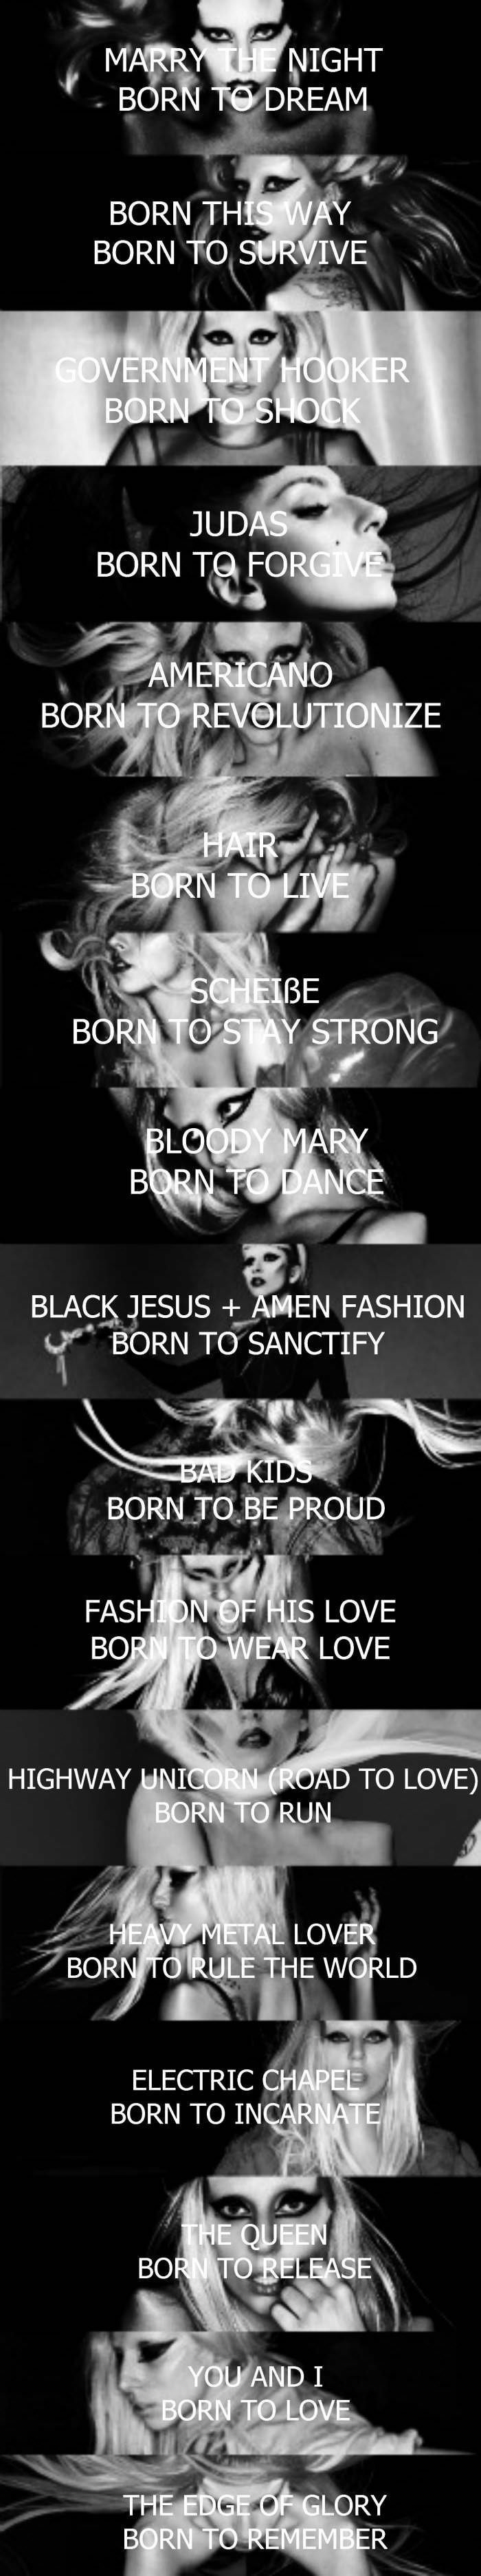 BORN THIS WAY.